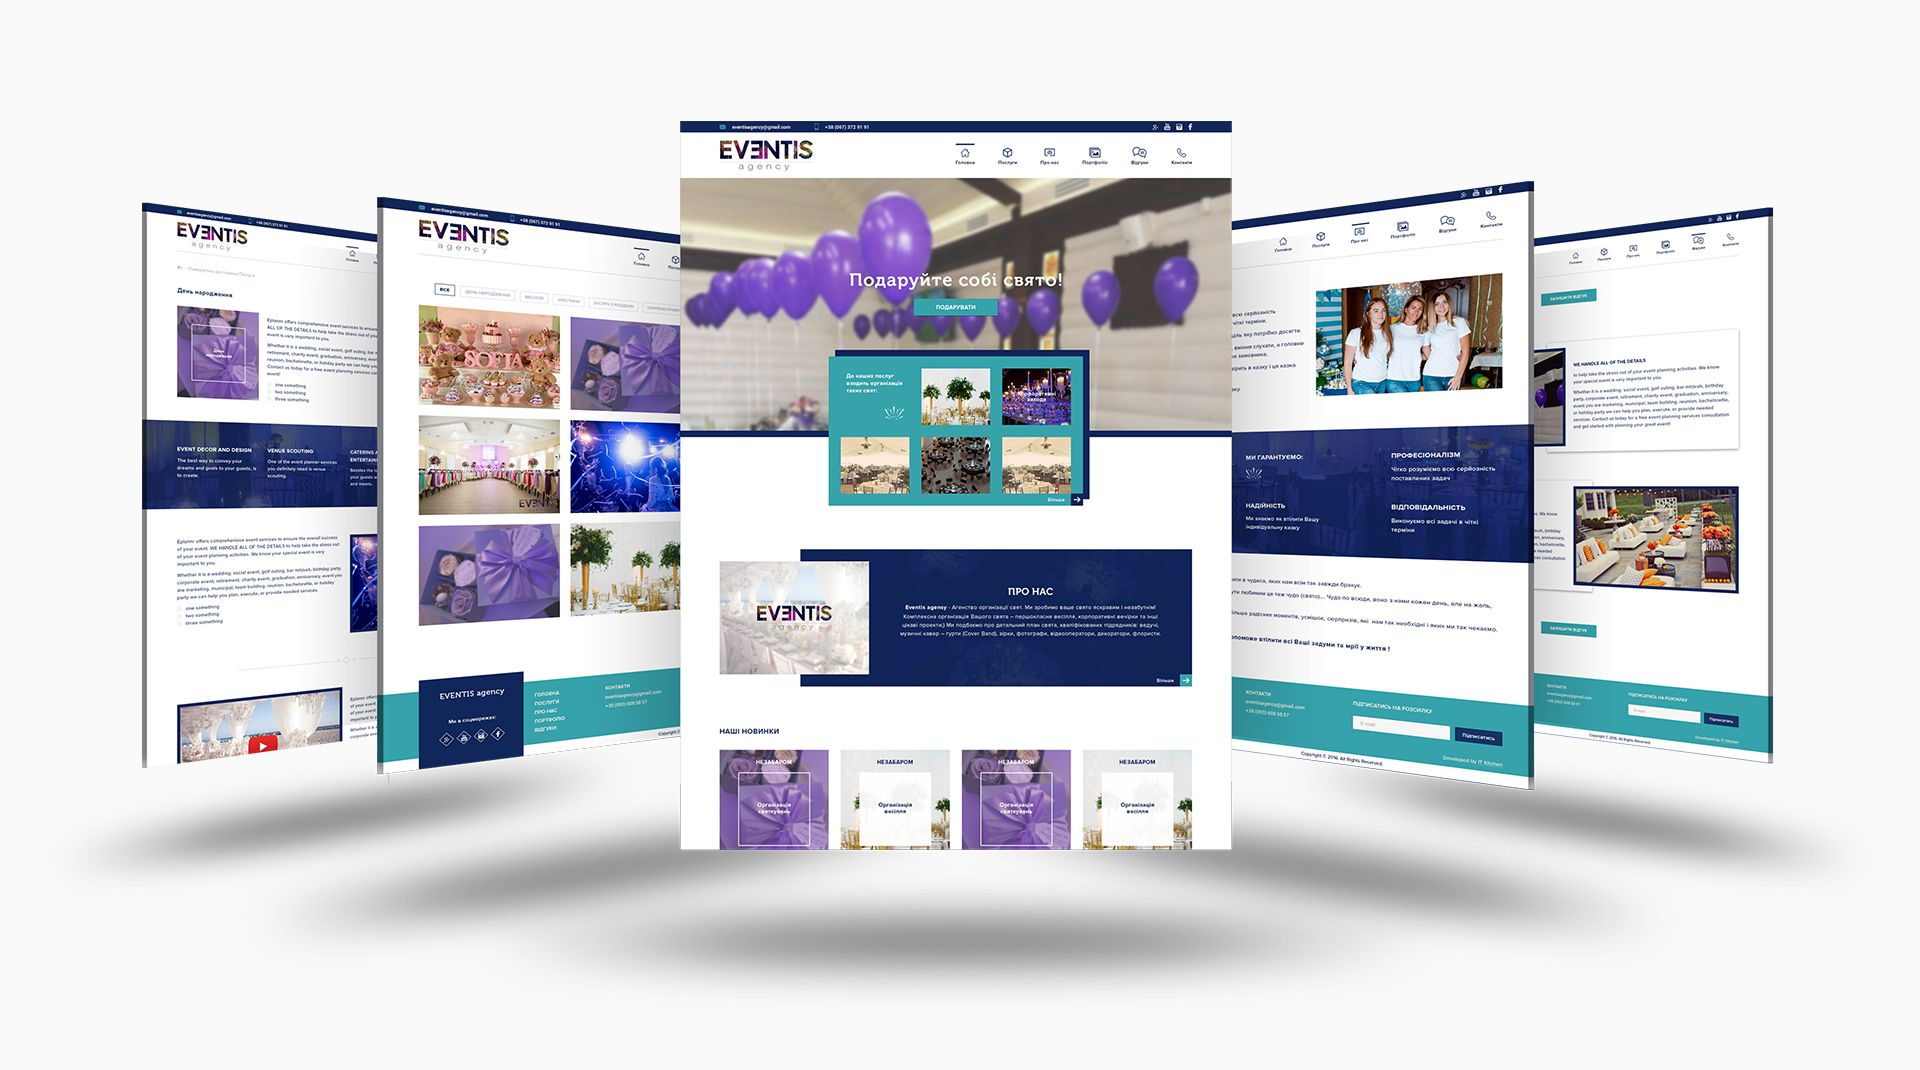 event2 compressor.jpg.pagespeed.ce .hqpe1s7zqx - Eventis Agency